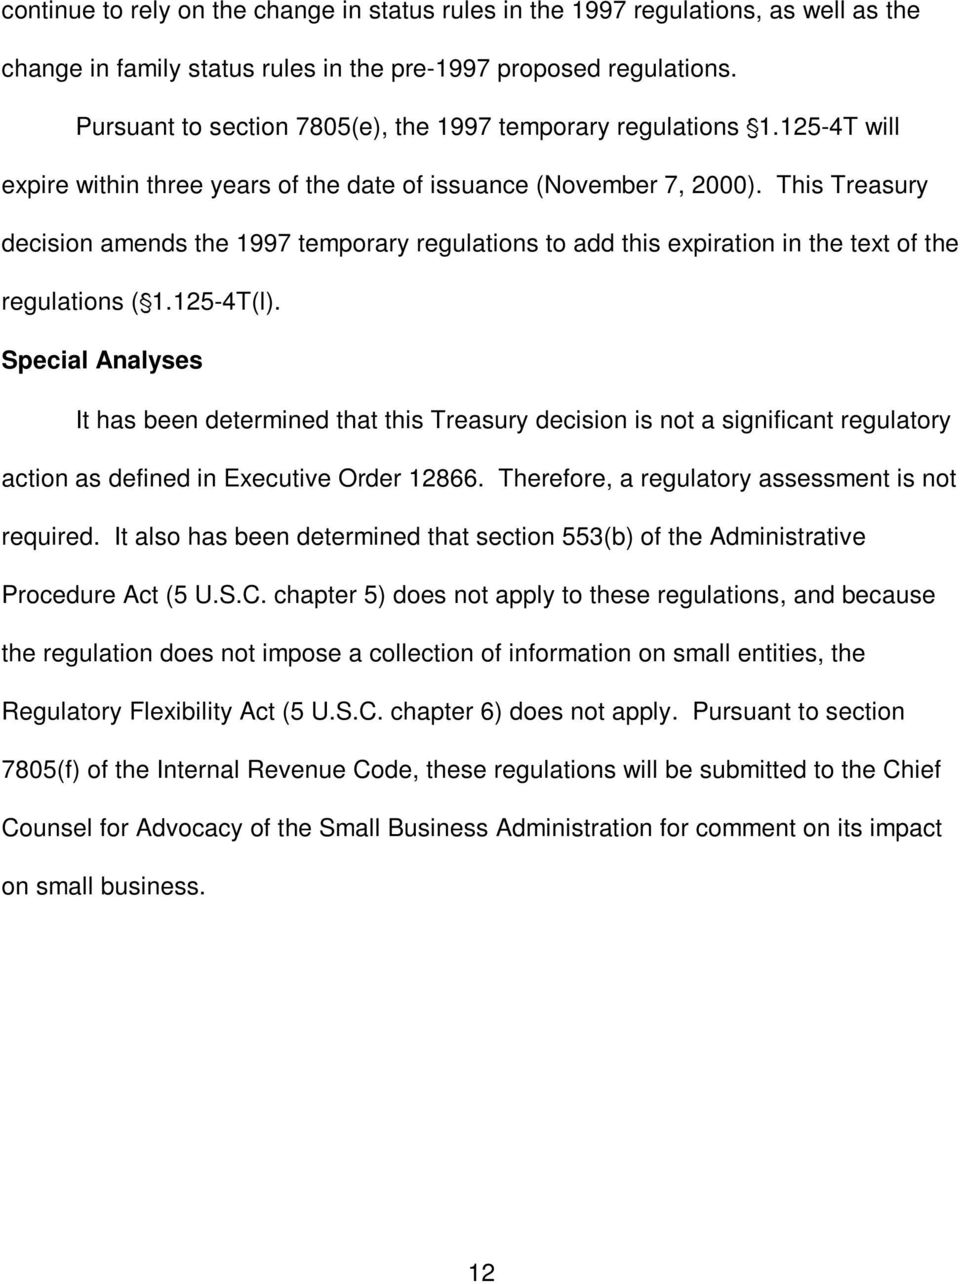 This Treasury decision amends the 1997 temporary regulations to add this expiration in the text of the regulations ('1.125-4T(l).